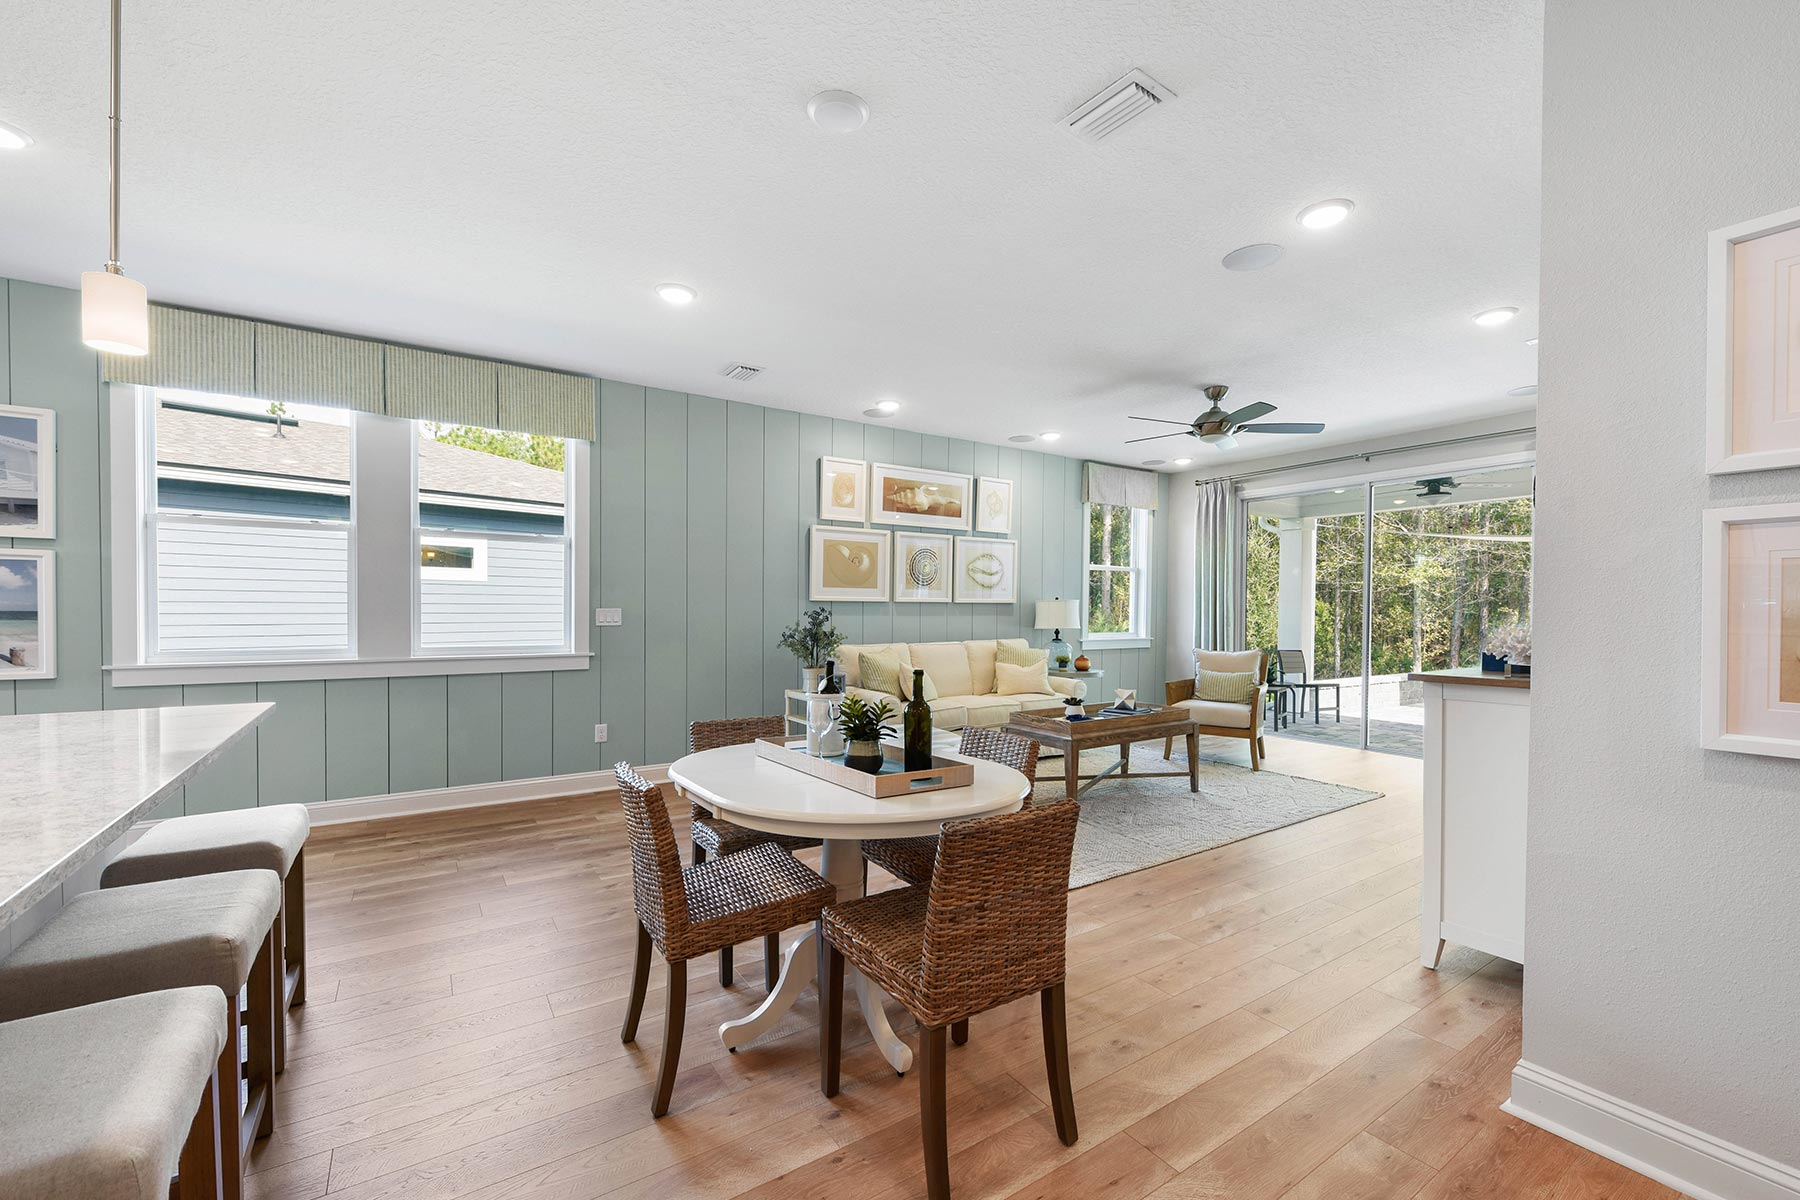 Ocean Plan Dining at RiverTown - WaterSong in St. Johns Florida by Mattamy Homes